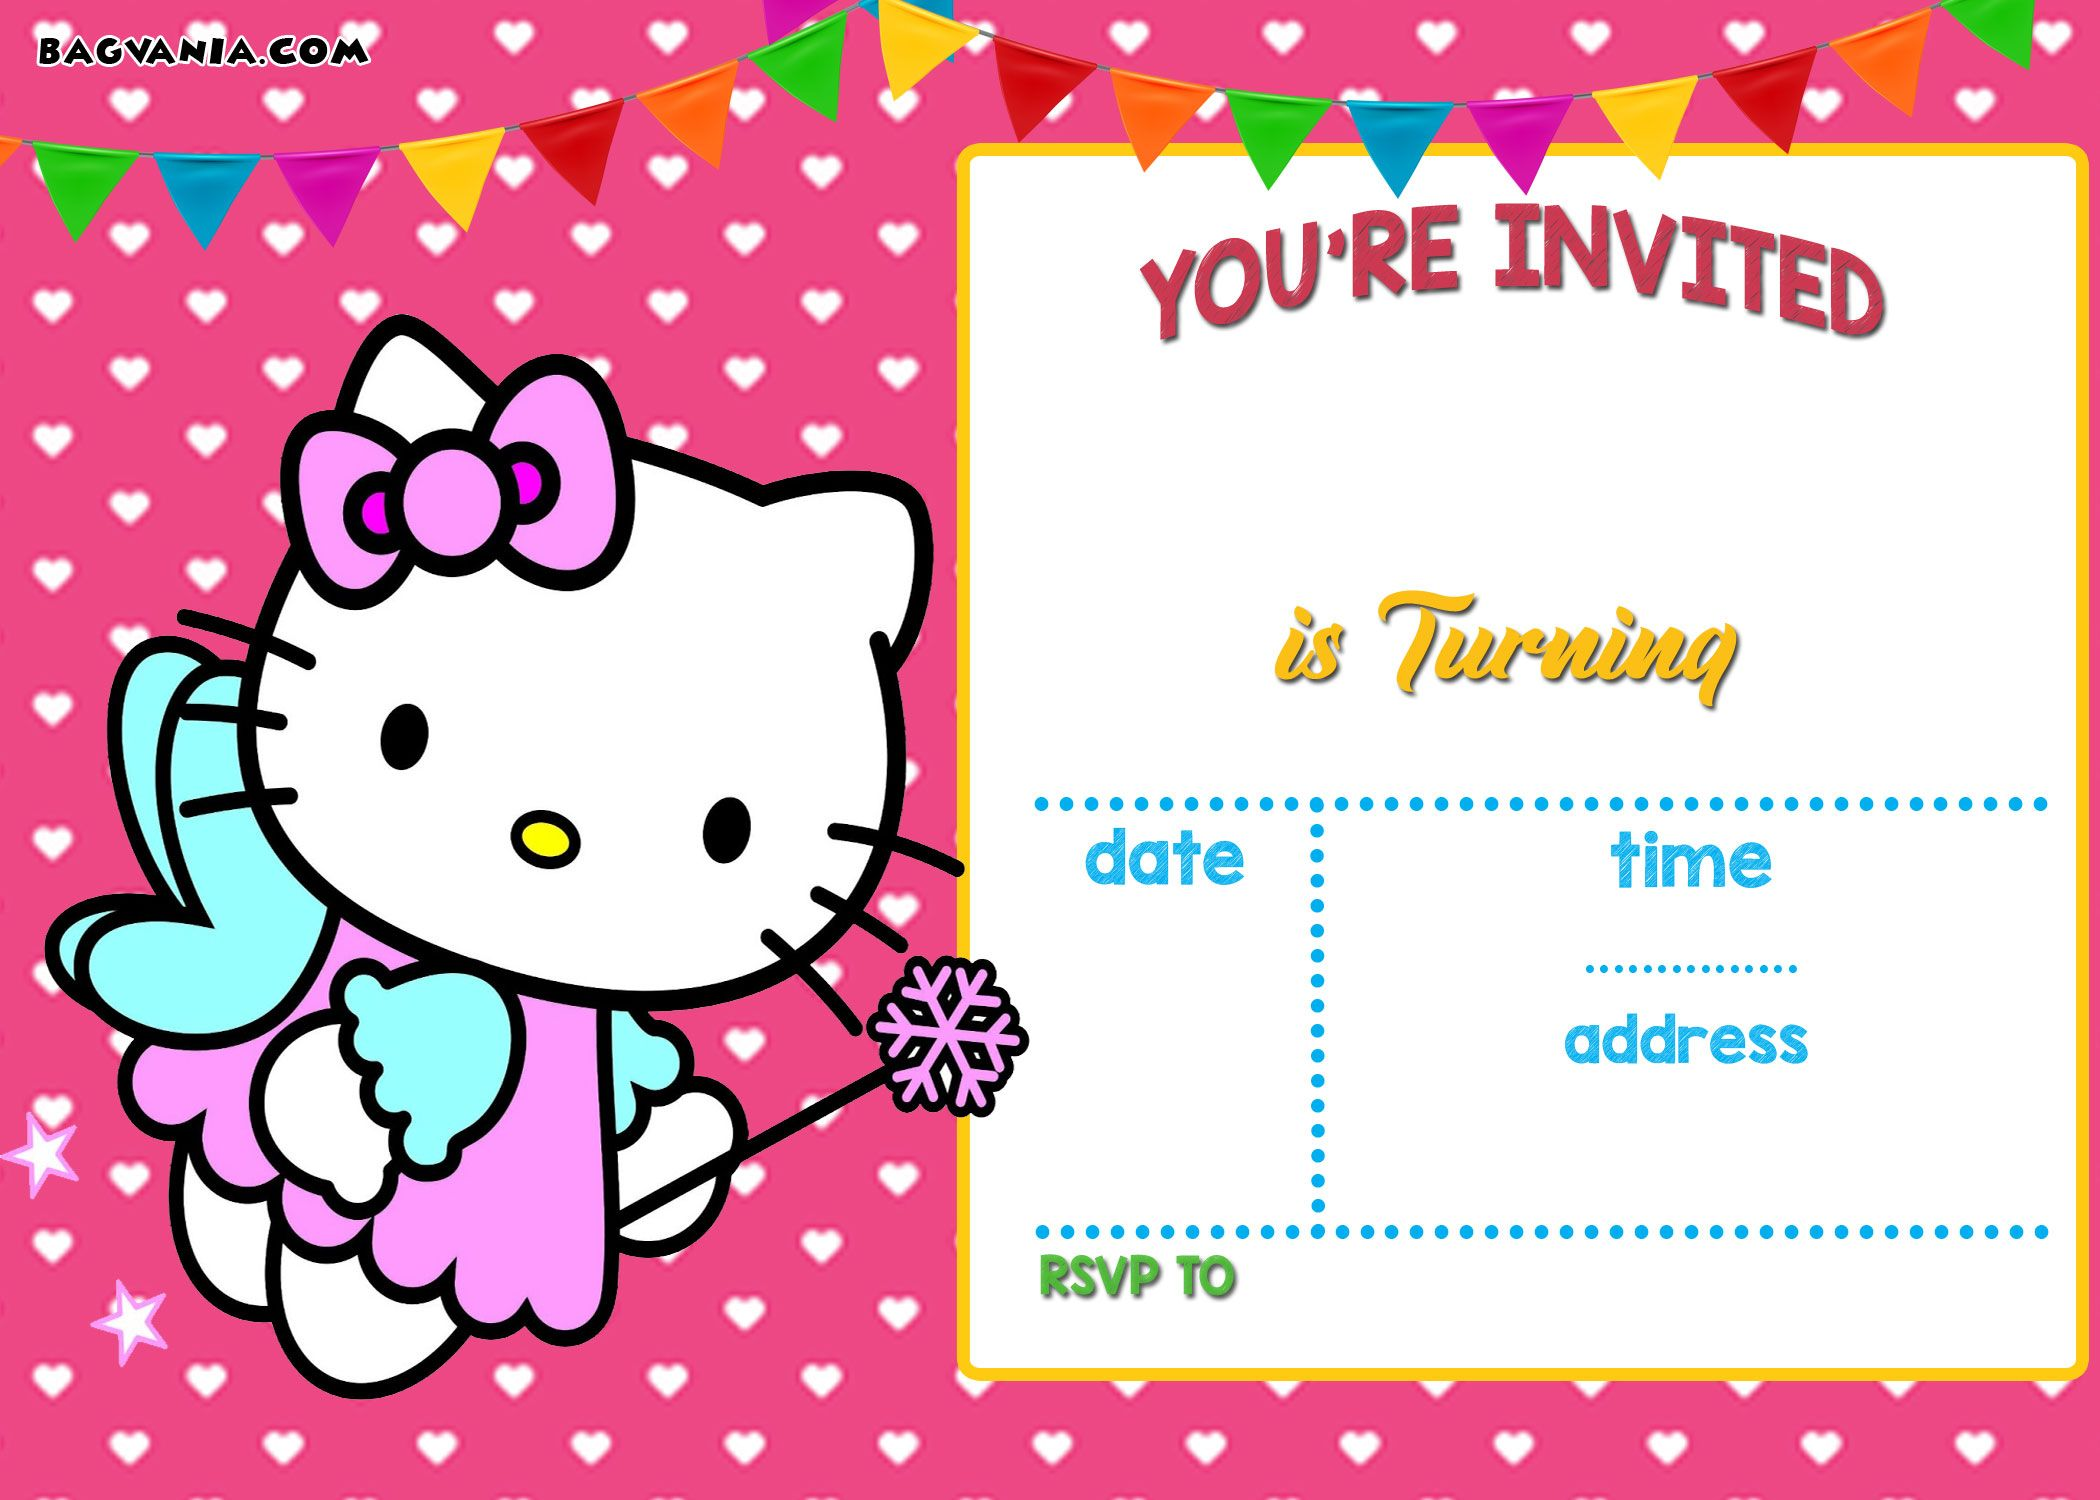 Download Now Free Hello Kitty Invitation Templates Hello Kitty Birthday Invitations Hello Kitty Invitations Printable Birthday Invitations